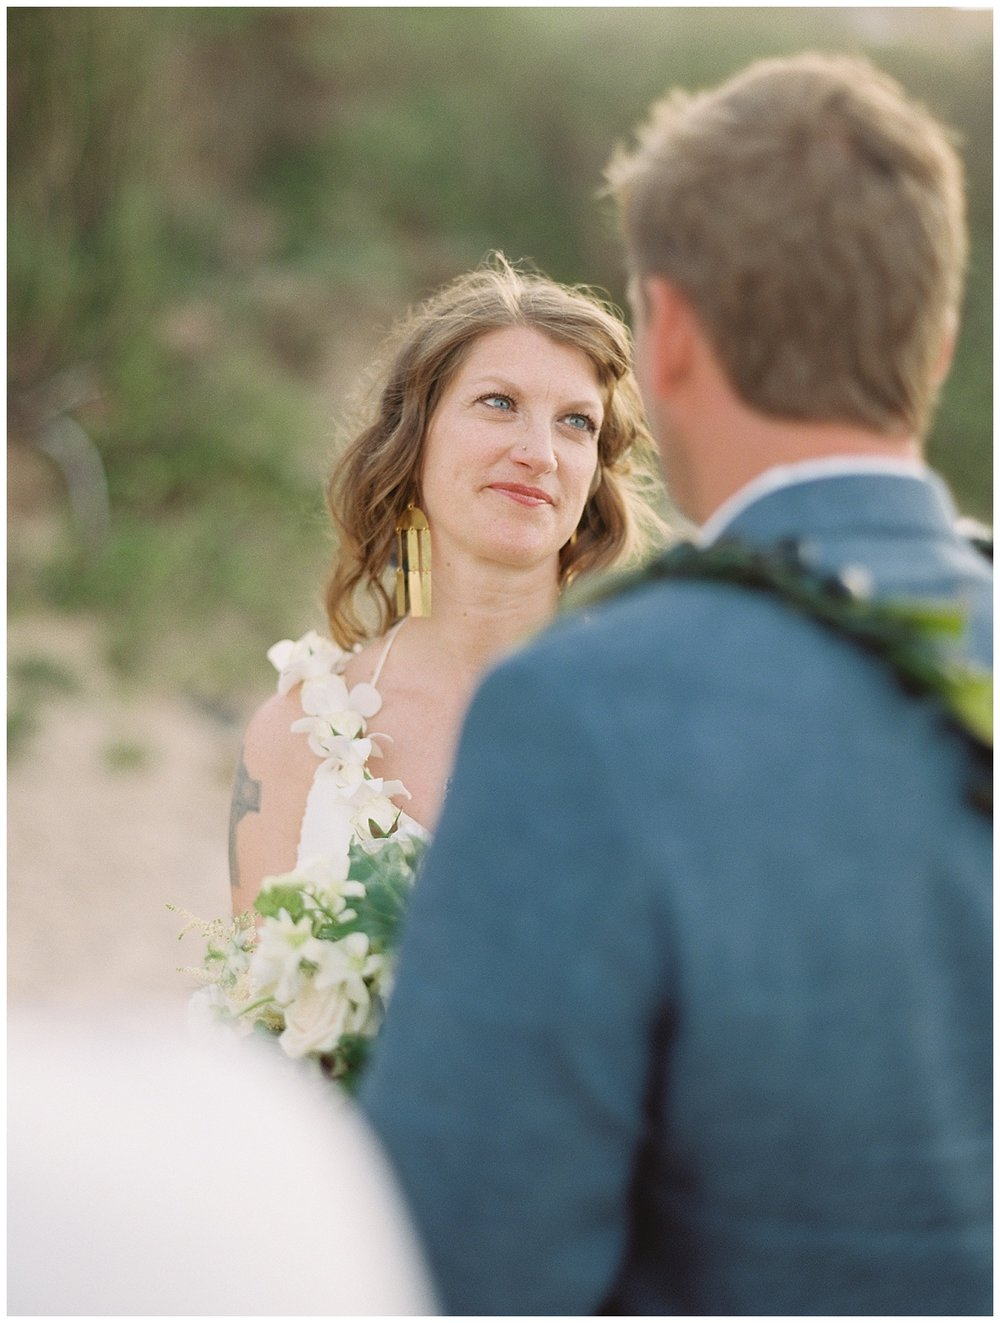 beach-elopement-bride-looking-at-groom-ceremony.jpg